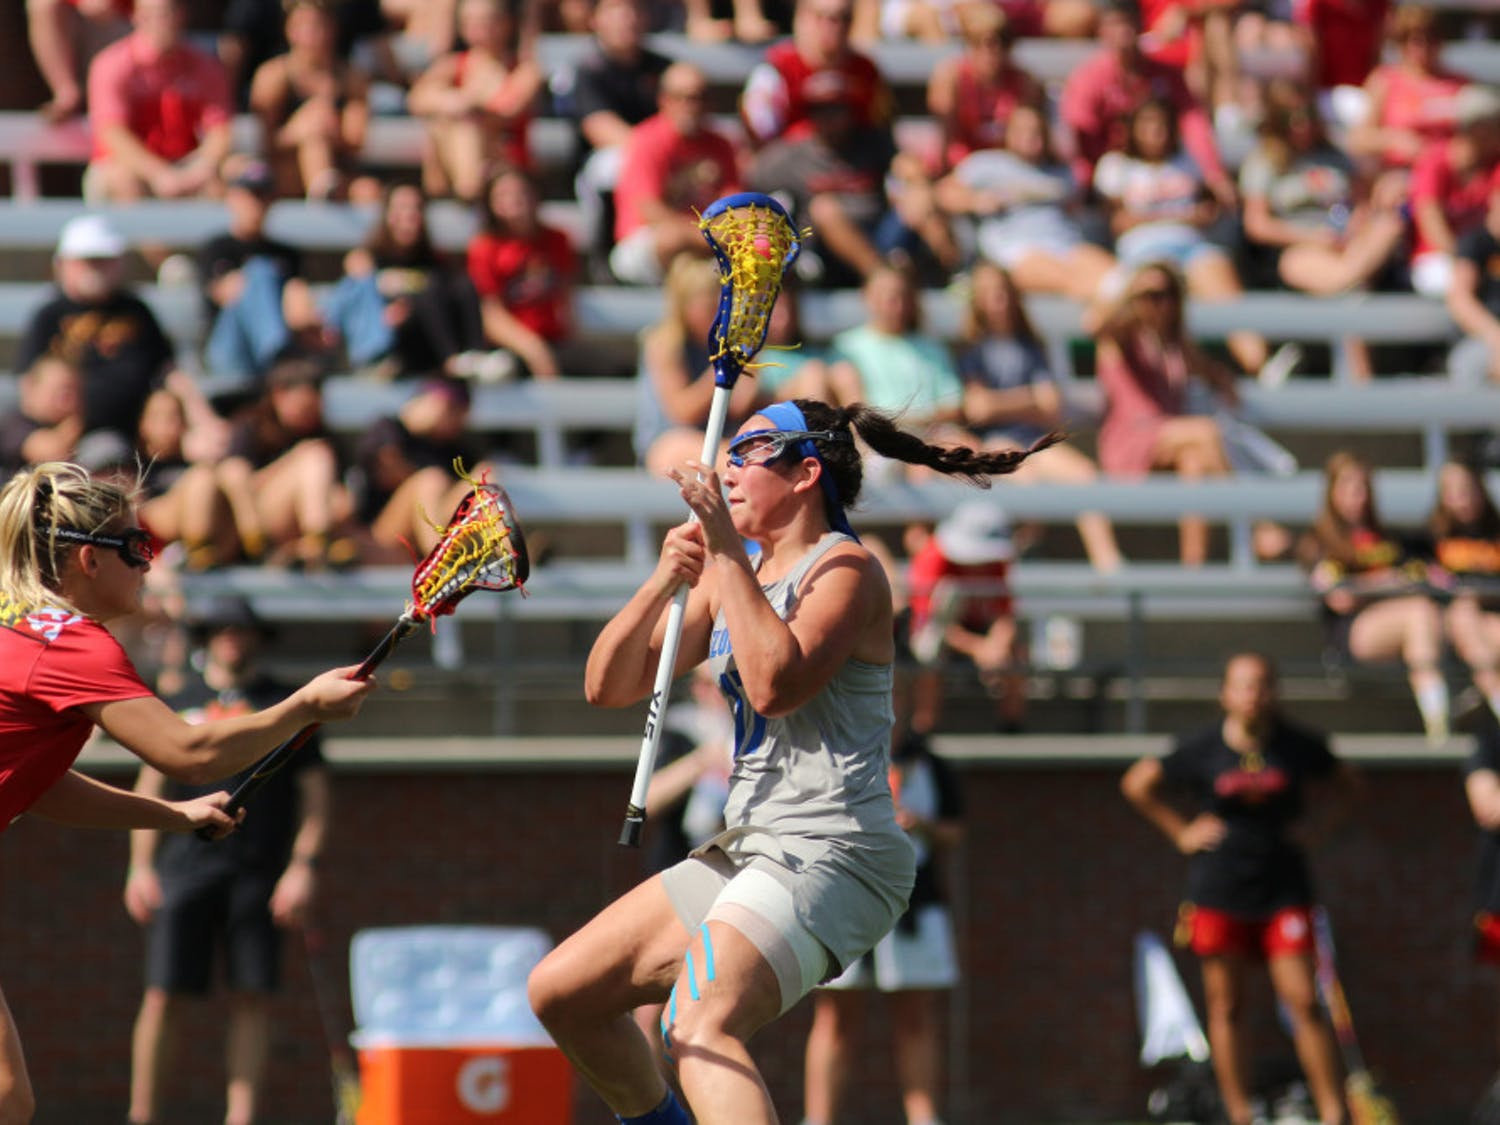 """Midfielder Shannon Kavanagh tied her career high of four goals Tuesday against Navy. """"She came in clutch,"""" Gators coach Amanda O'Leary said."""